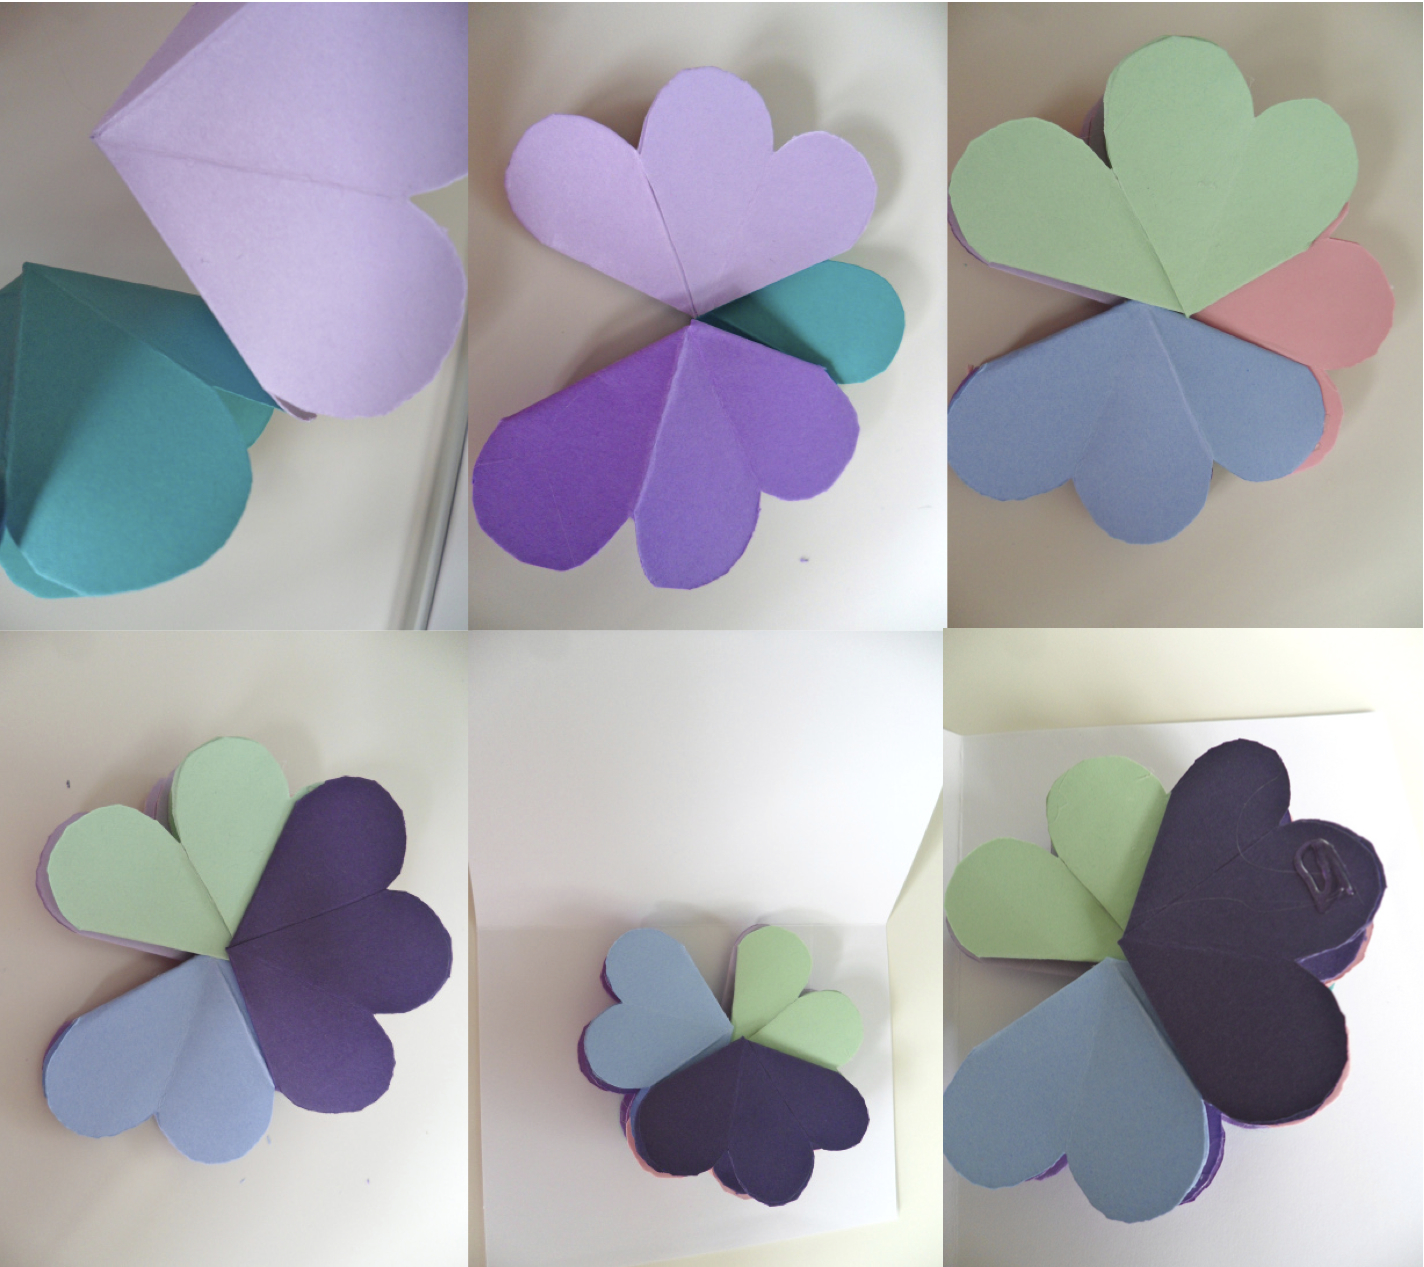 gluing flowers - Make A Pop Up Card